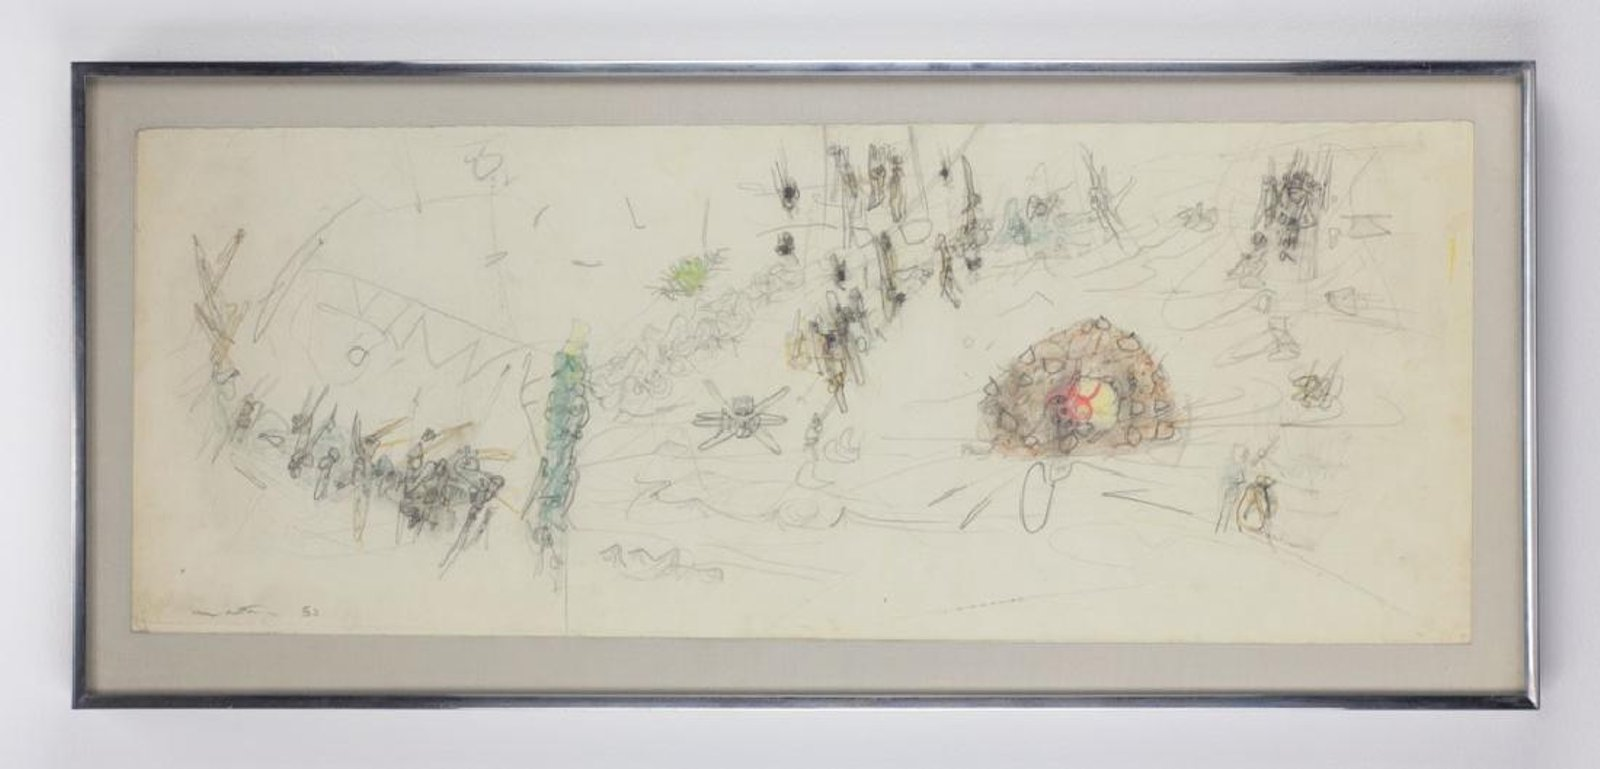 Roberto Matta (Chilean, 1911-2002) Work On Paper '53. Sold For $7,812 At Capsule Gallery Auction